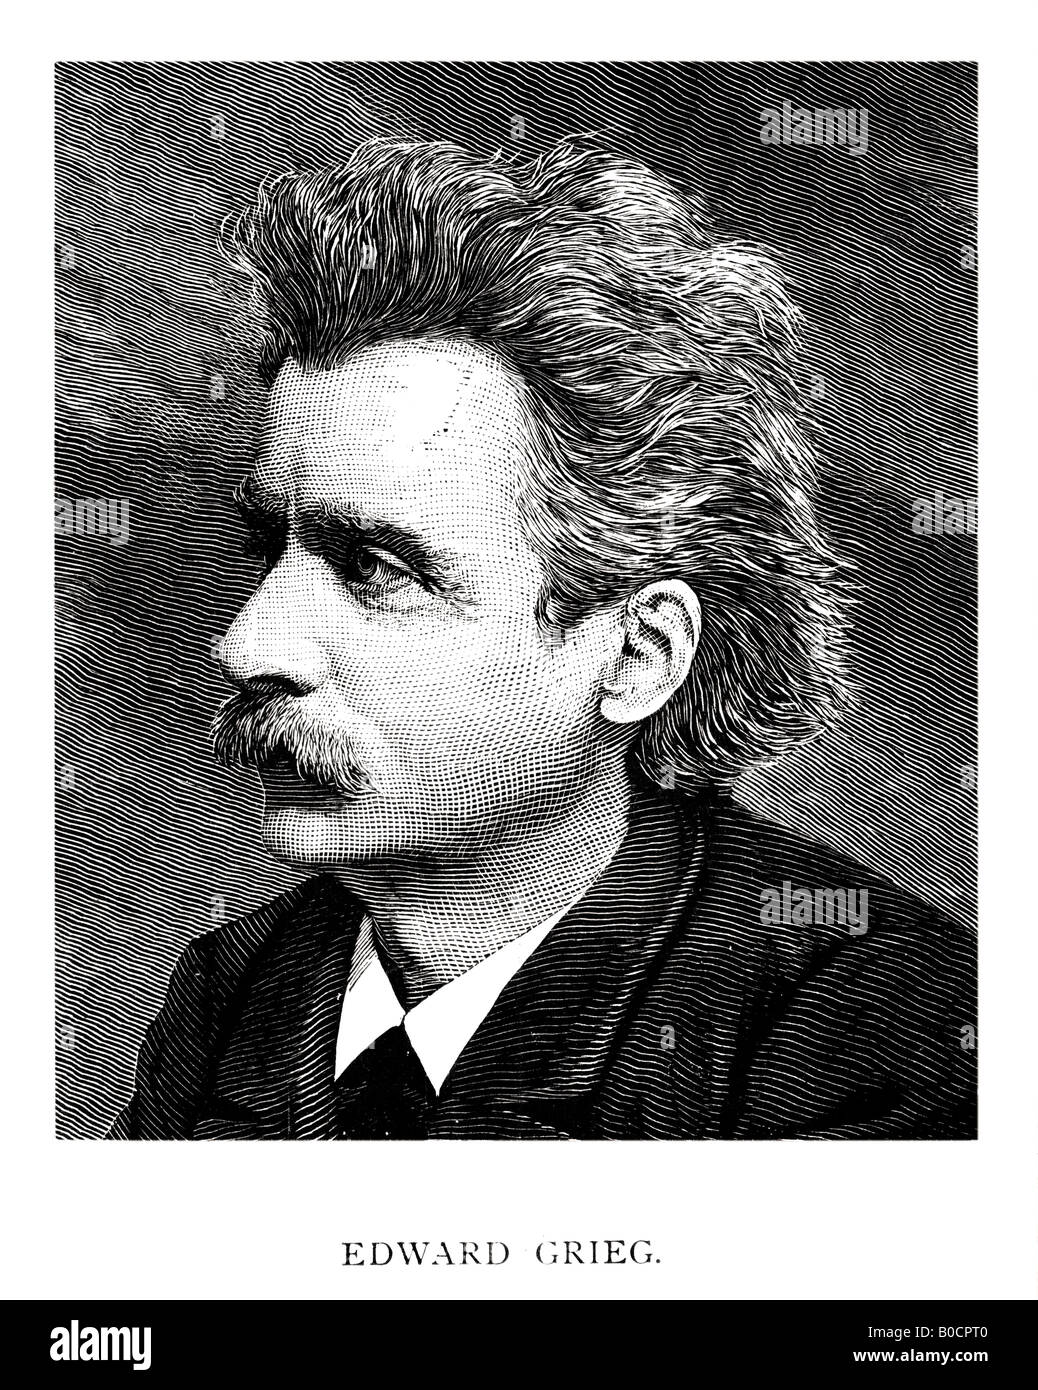 Victorian Steel Engraved  1892 Print of Edward Grieg Musical Composer FOR EDITORIAL USE ONLY - Stock Image